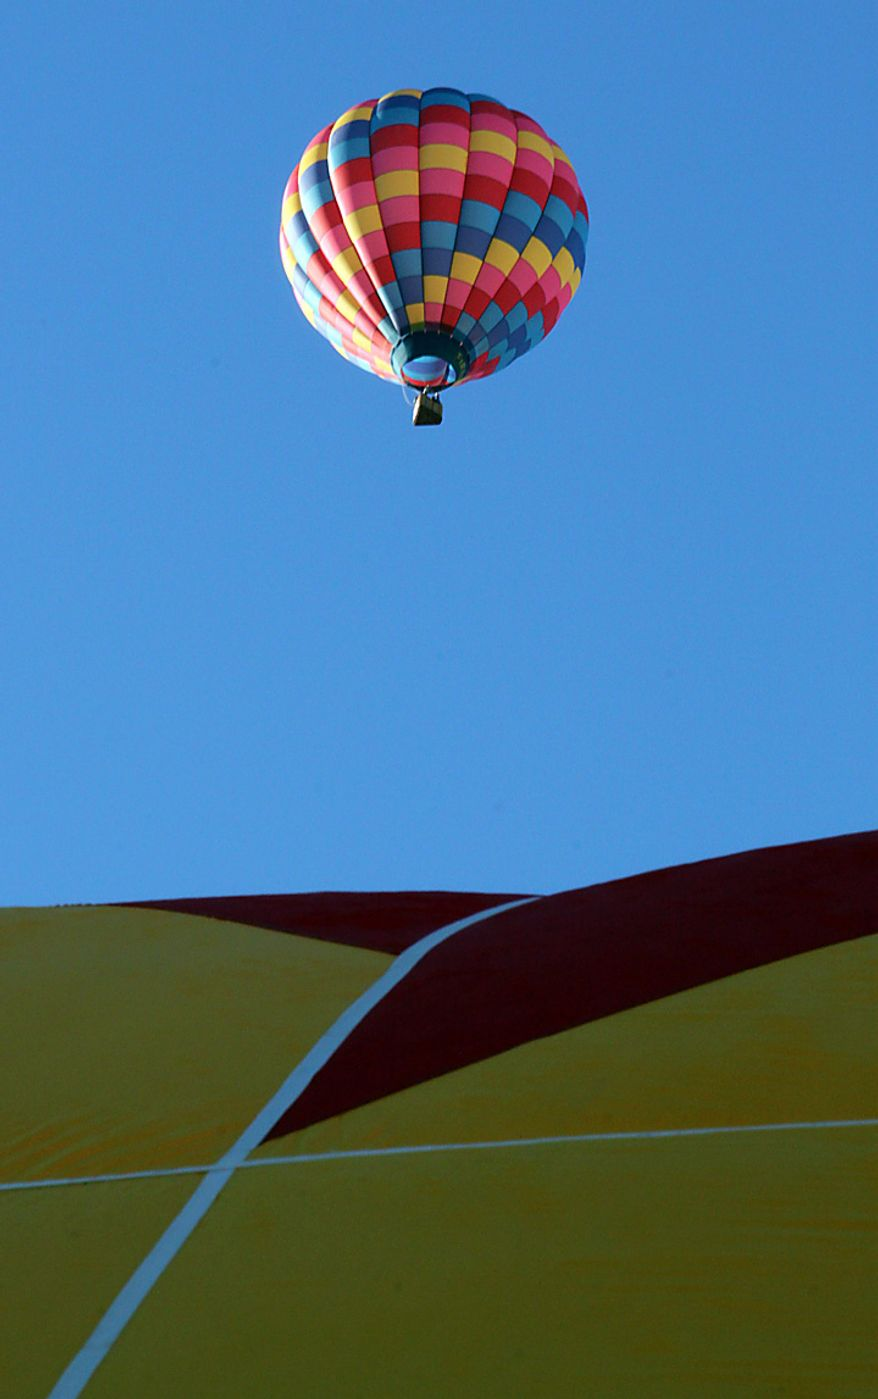 A hot air balloon lifts off during the Albuquerque International Balloon Fiesta in Albuquerque, N.M., on Tuesday, Oct. 5, 2010. The annual event has attracted about 500 balloons and thousands of spectators. (AP Photo/Susan Montoya Bryan)